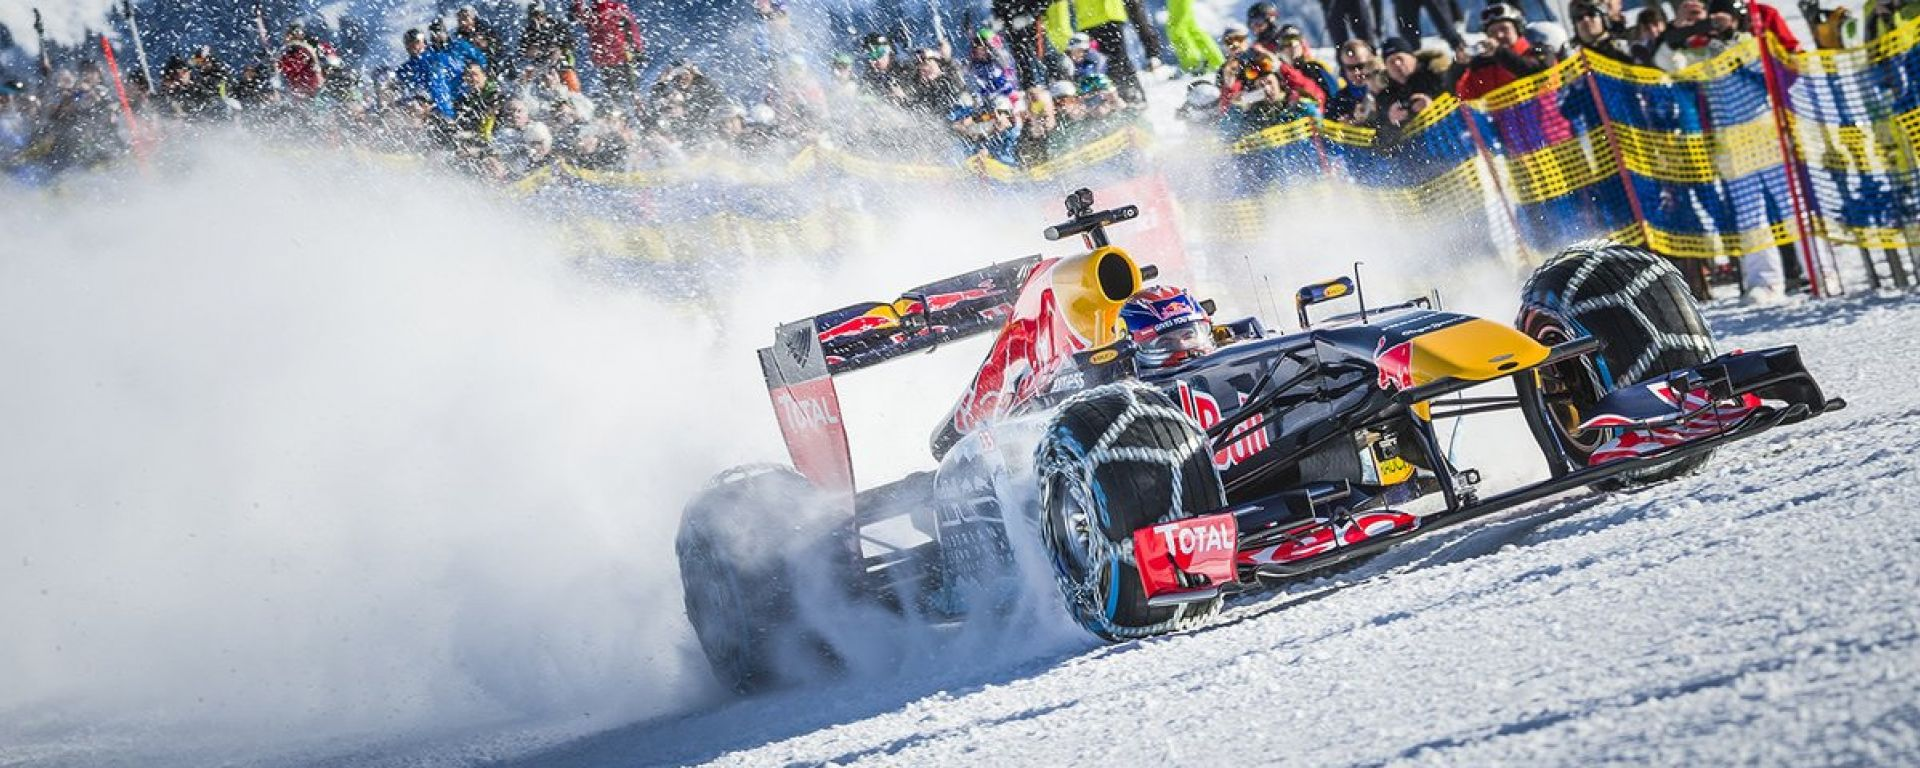 Red Bull: il 2019 inizia con crash test, shakedown e... neve